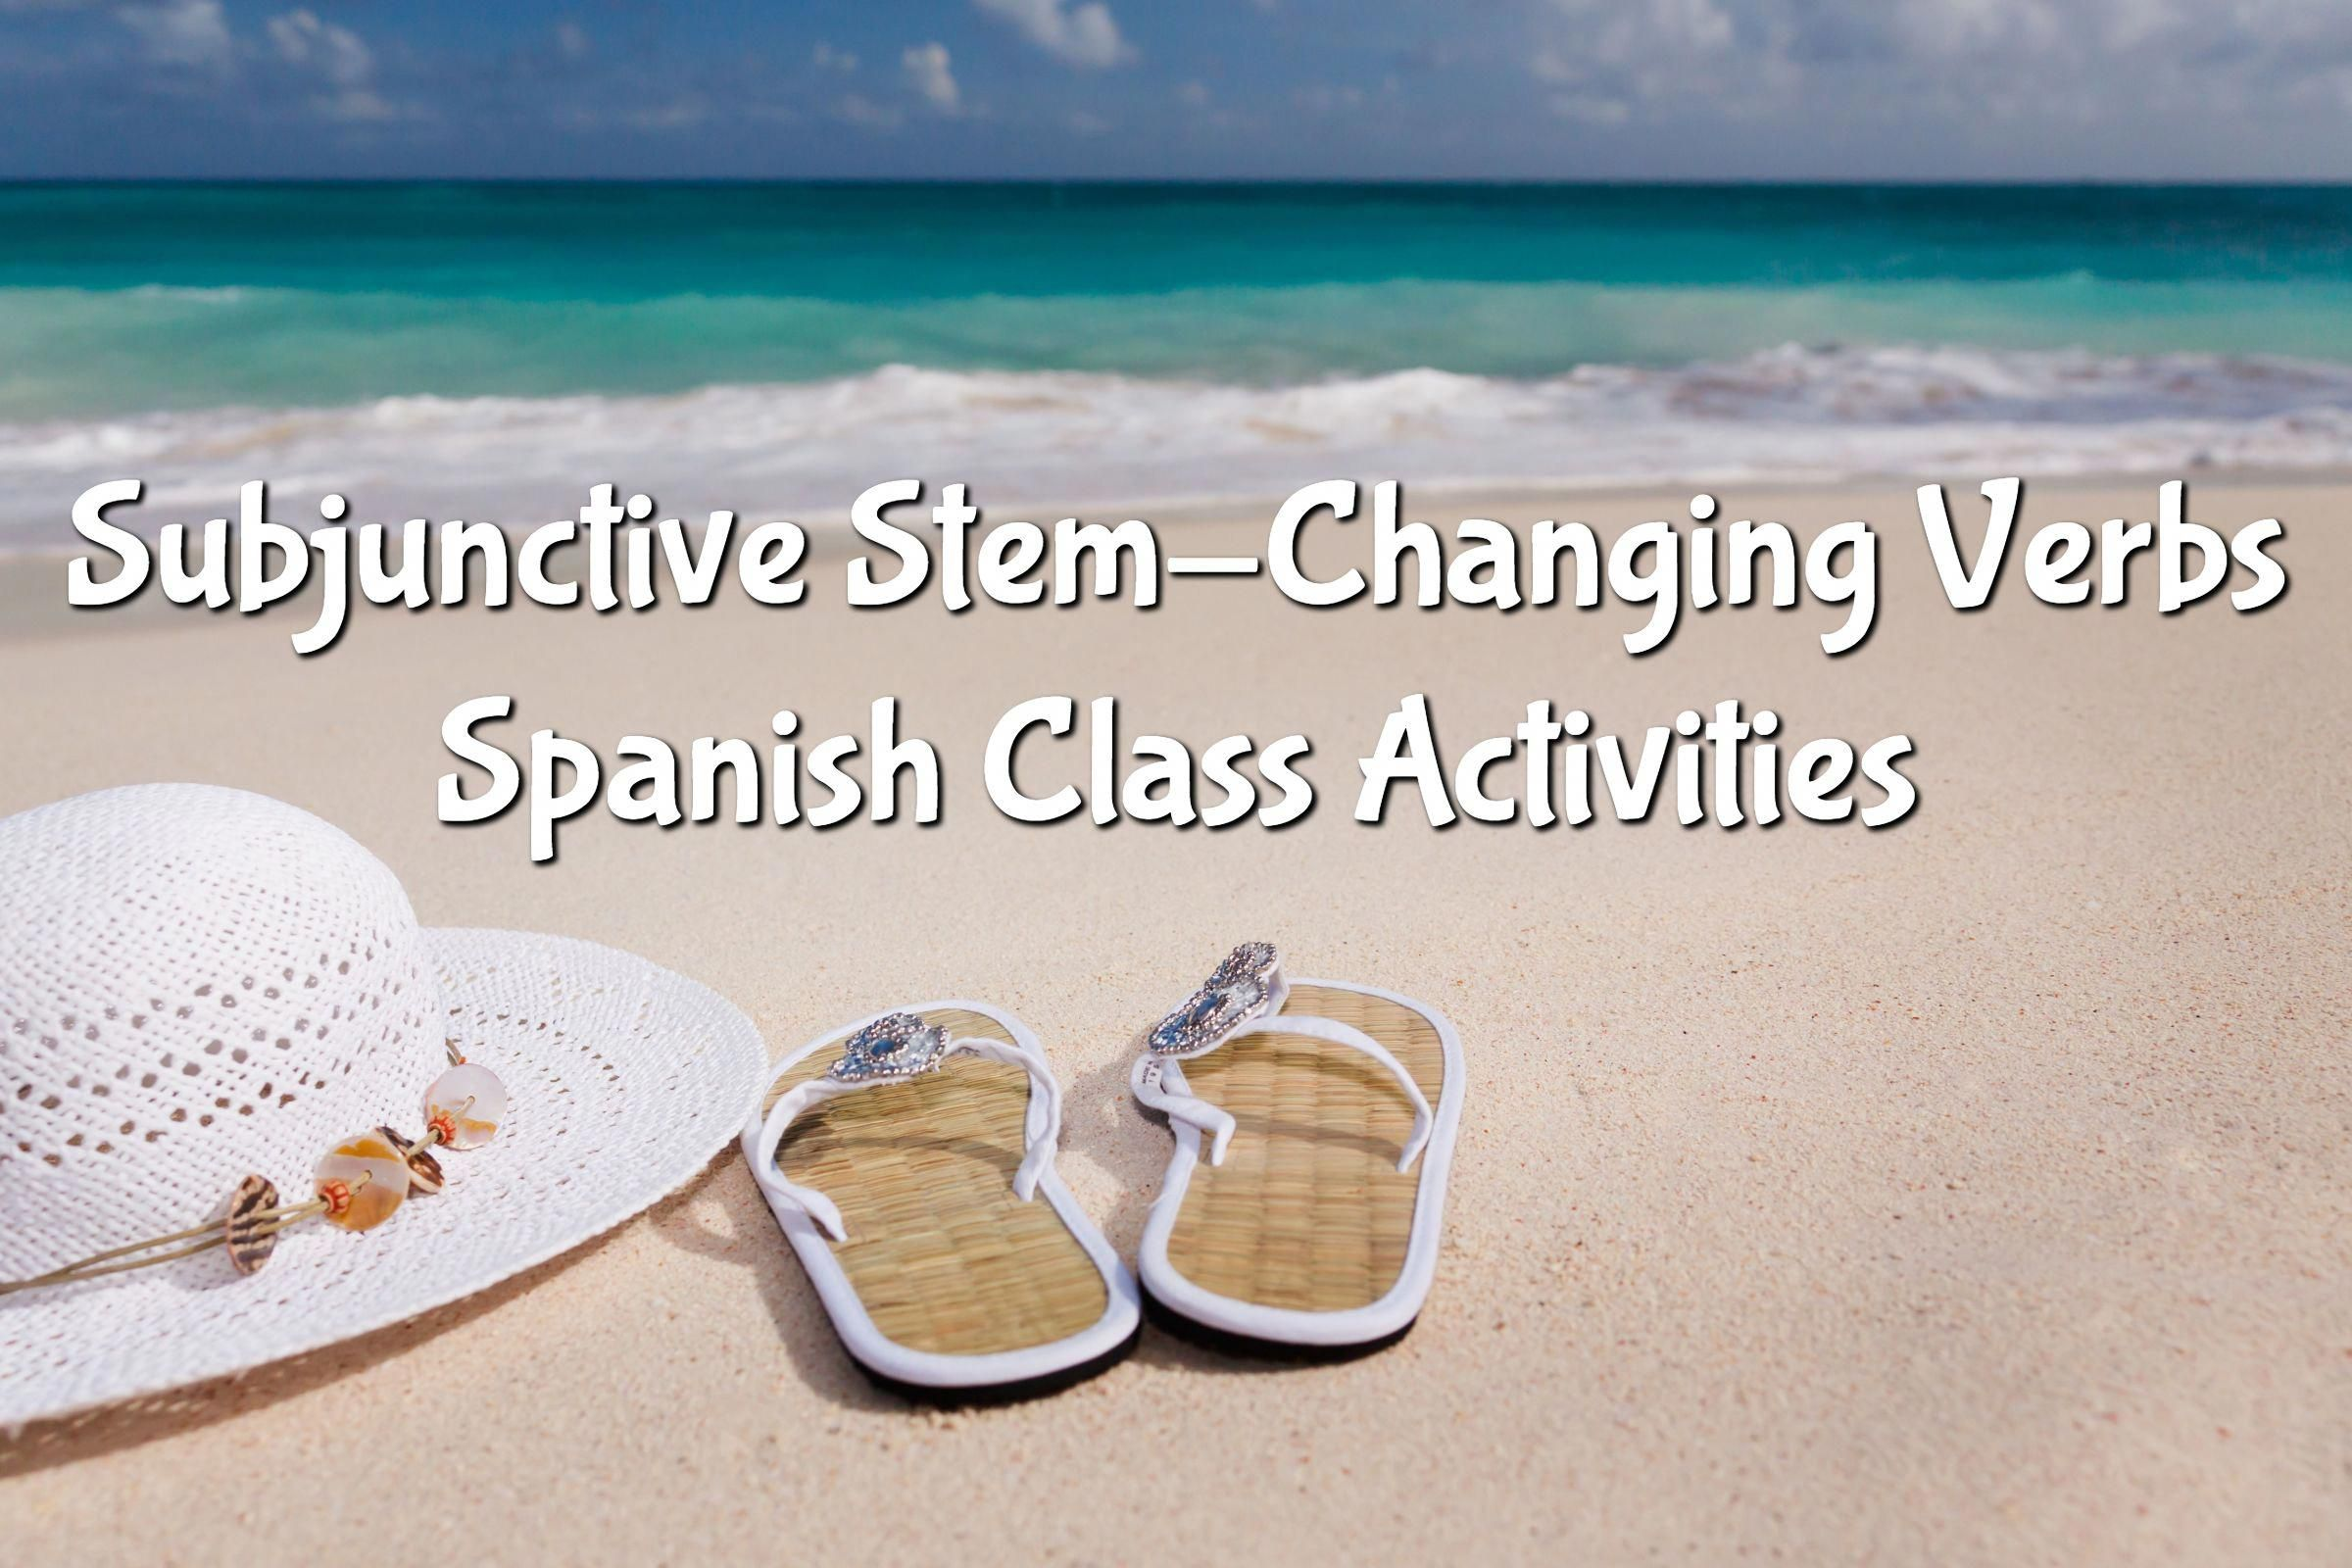 Subjunctive Stem Changing Verbs Spanish Class Activities